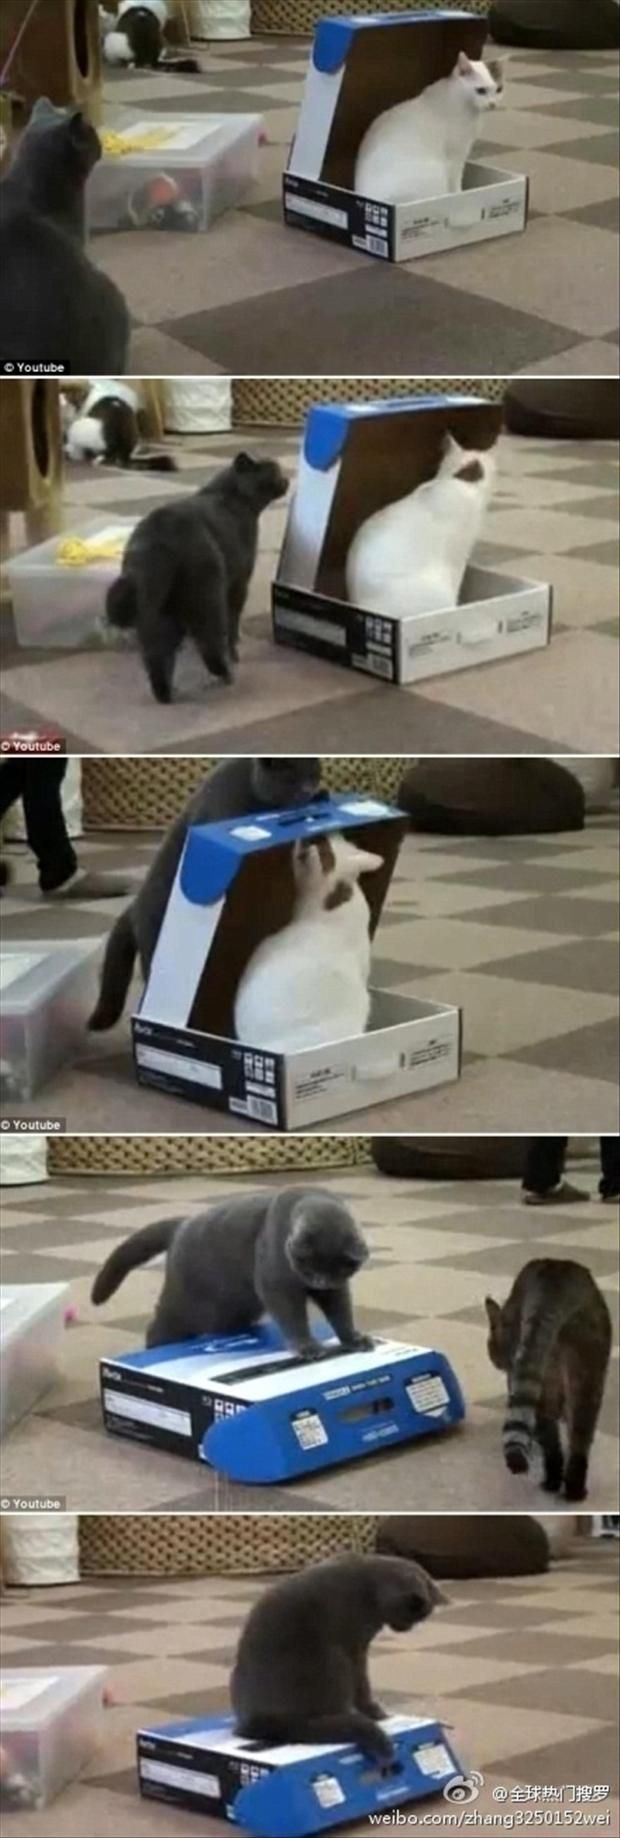 Funny Cats In The Box